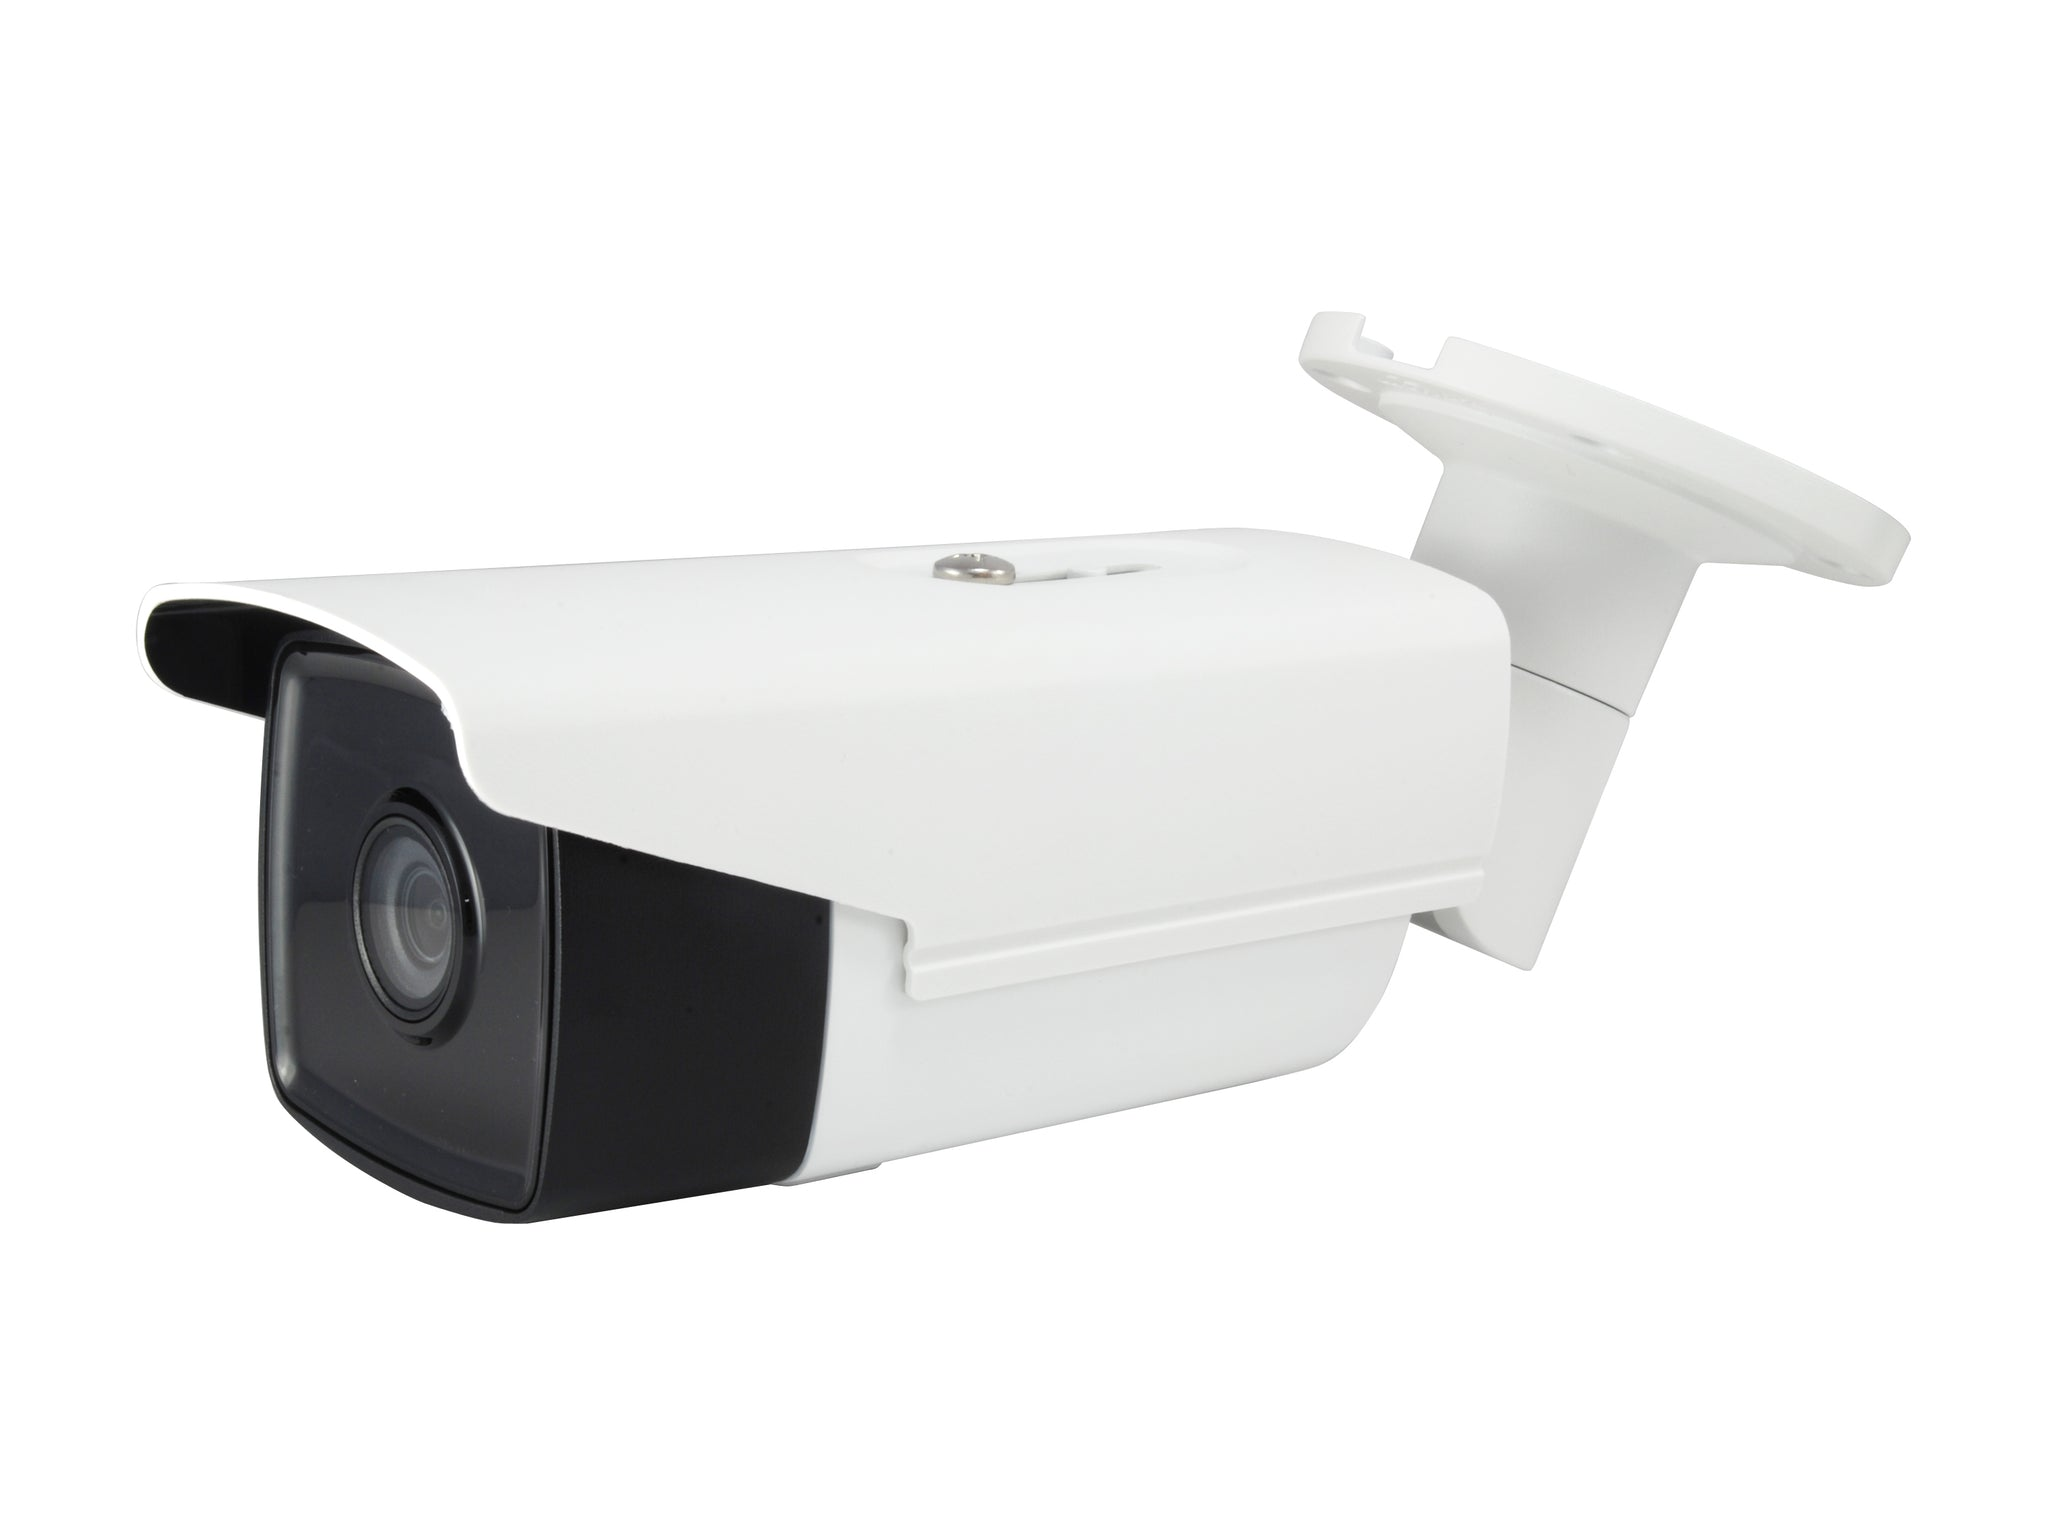 FCS-5093 Fixed IP Network Camera, 8MP, H.265/264, 802.3af PoE, IR LEDs, Indoor/Outdoor